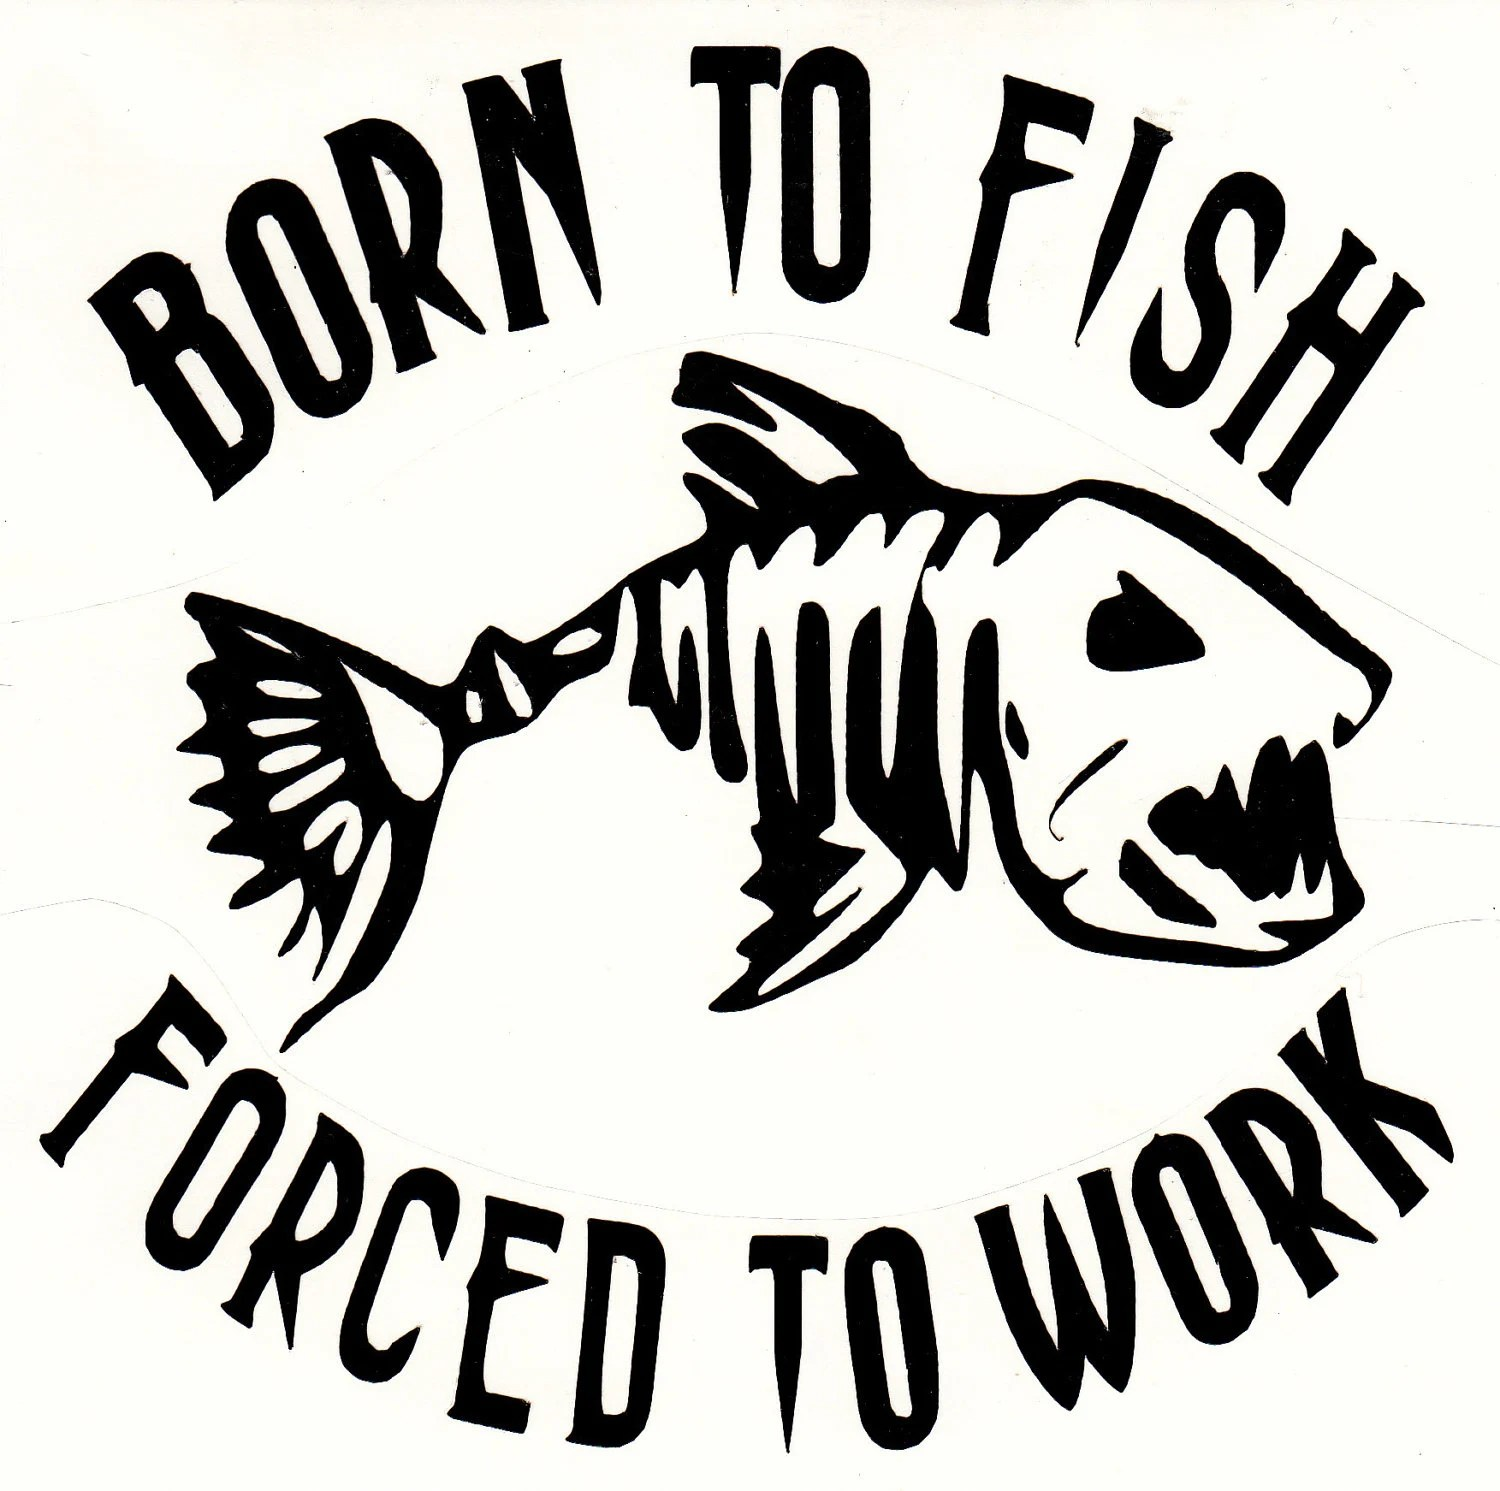 Items similar to BORN TO FISH forced to work on Etsy